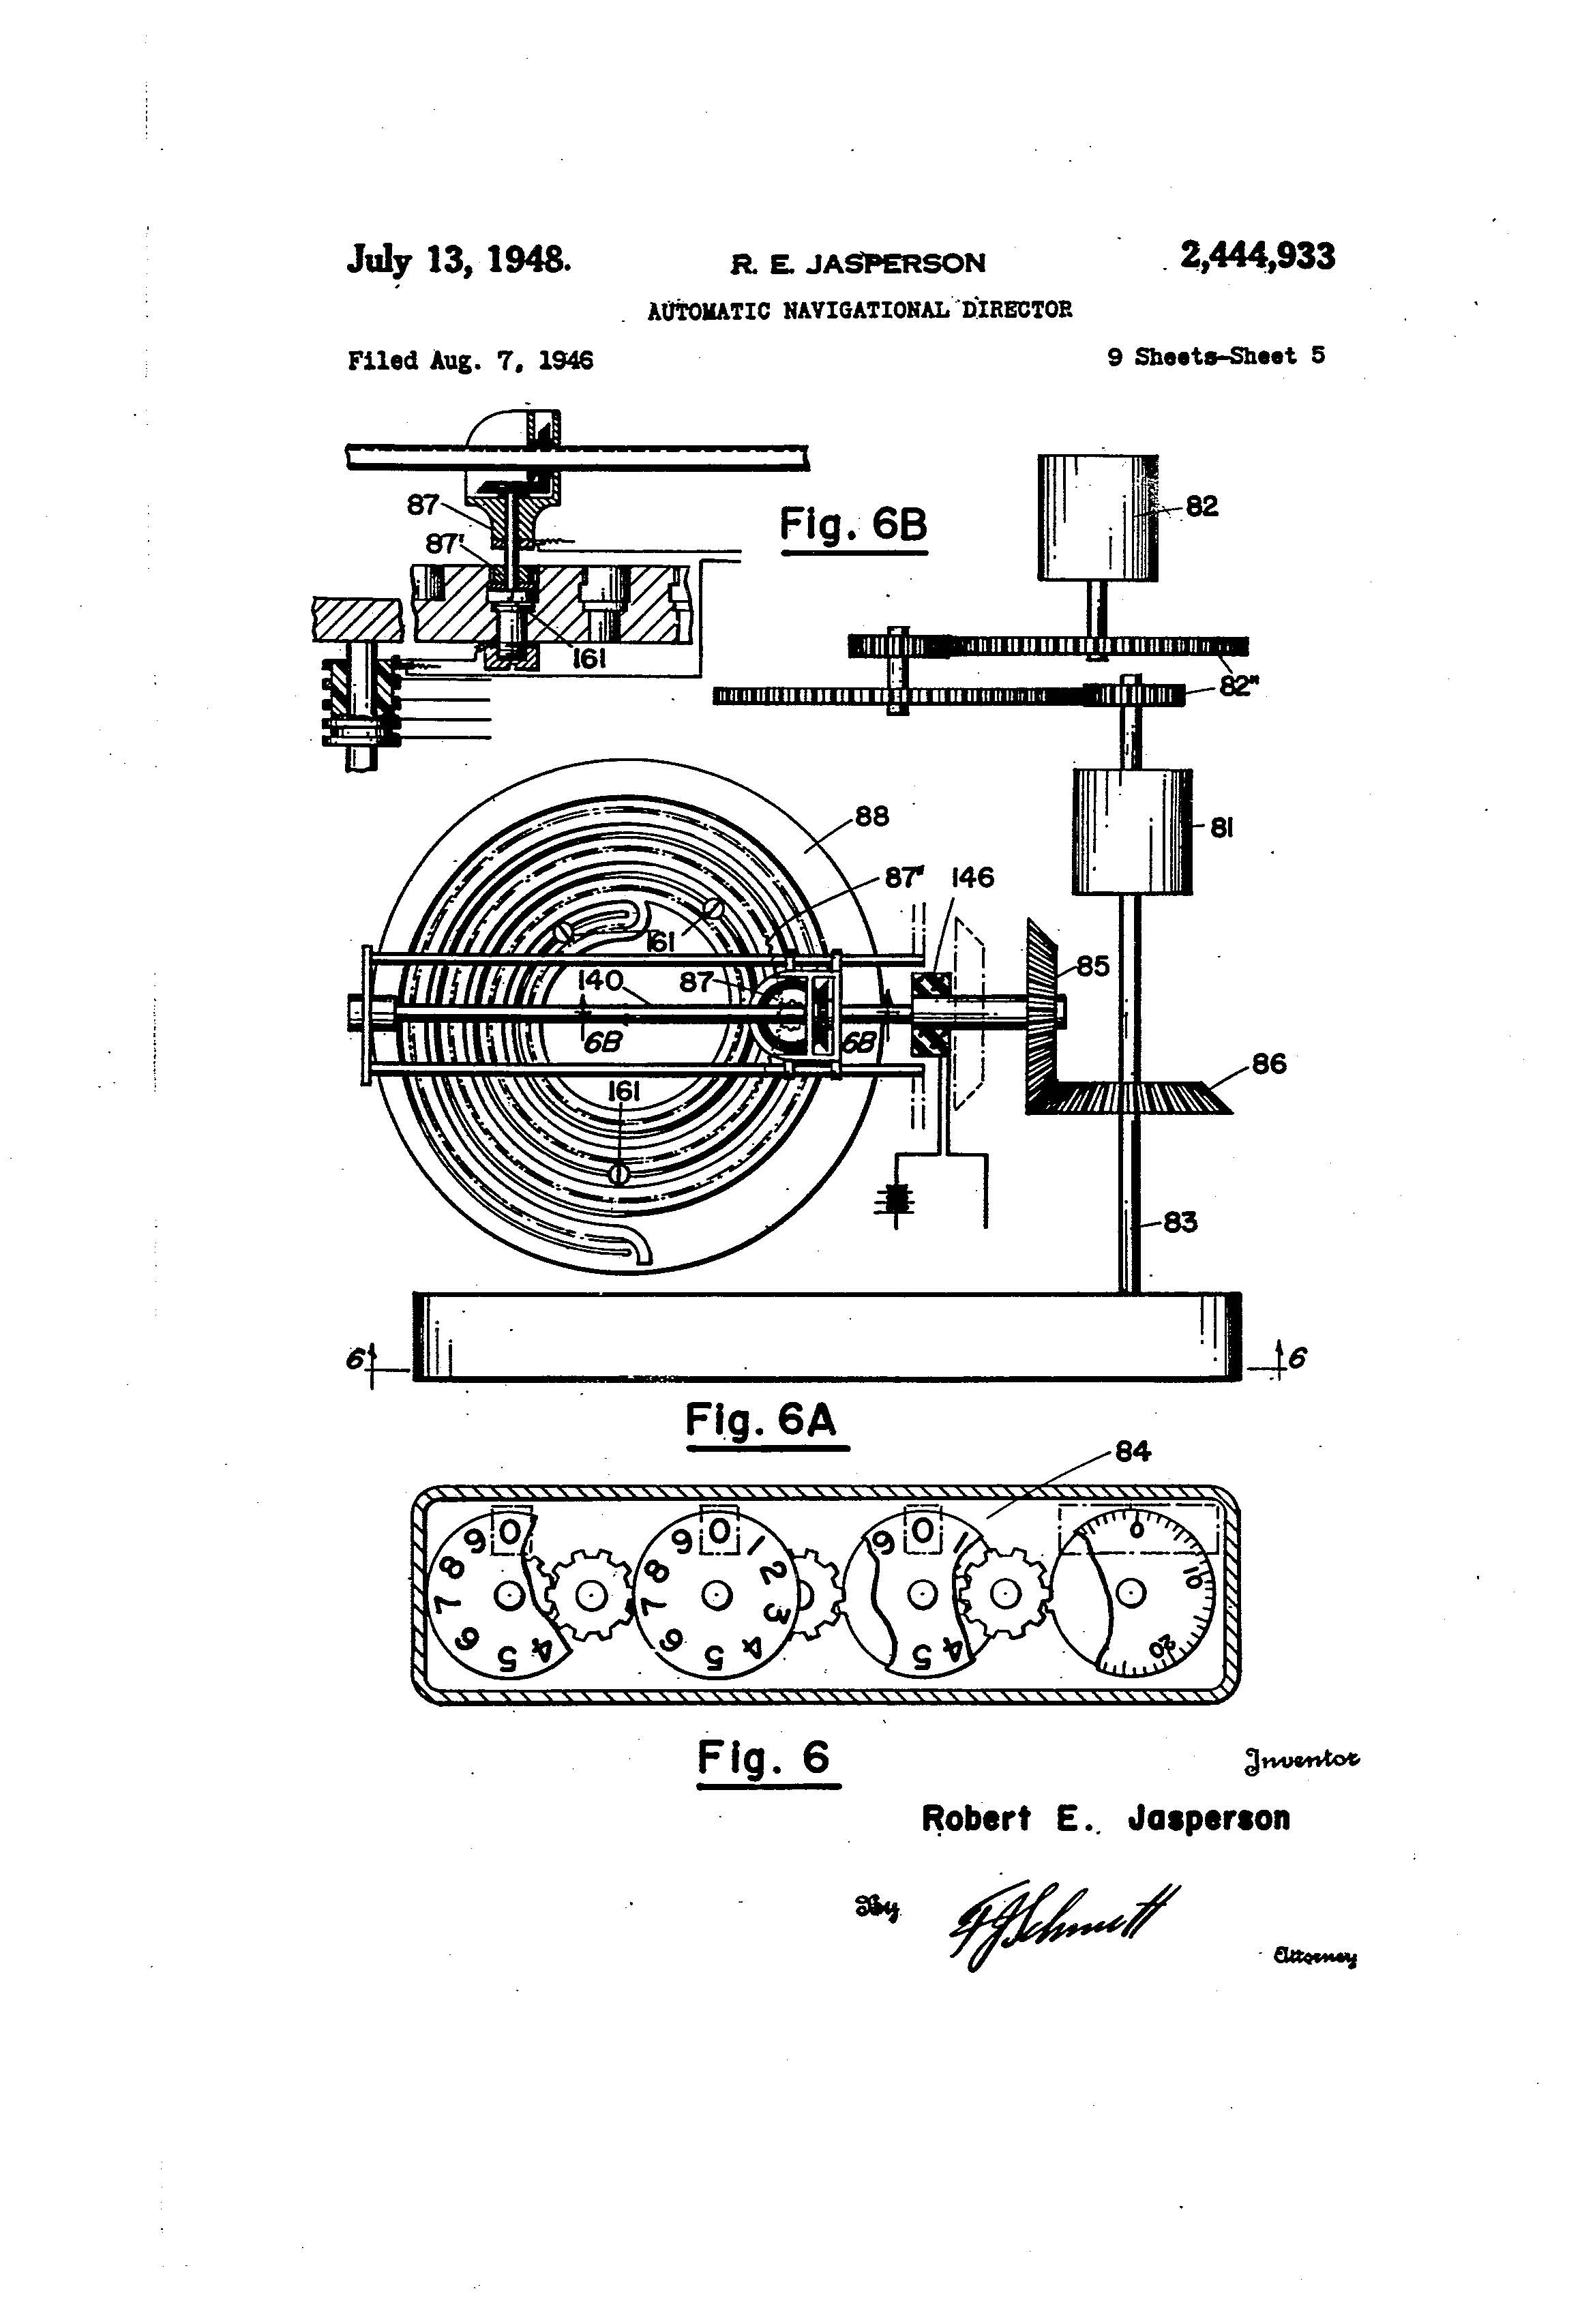 Patent of the Day: Automatic Navigational Director